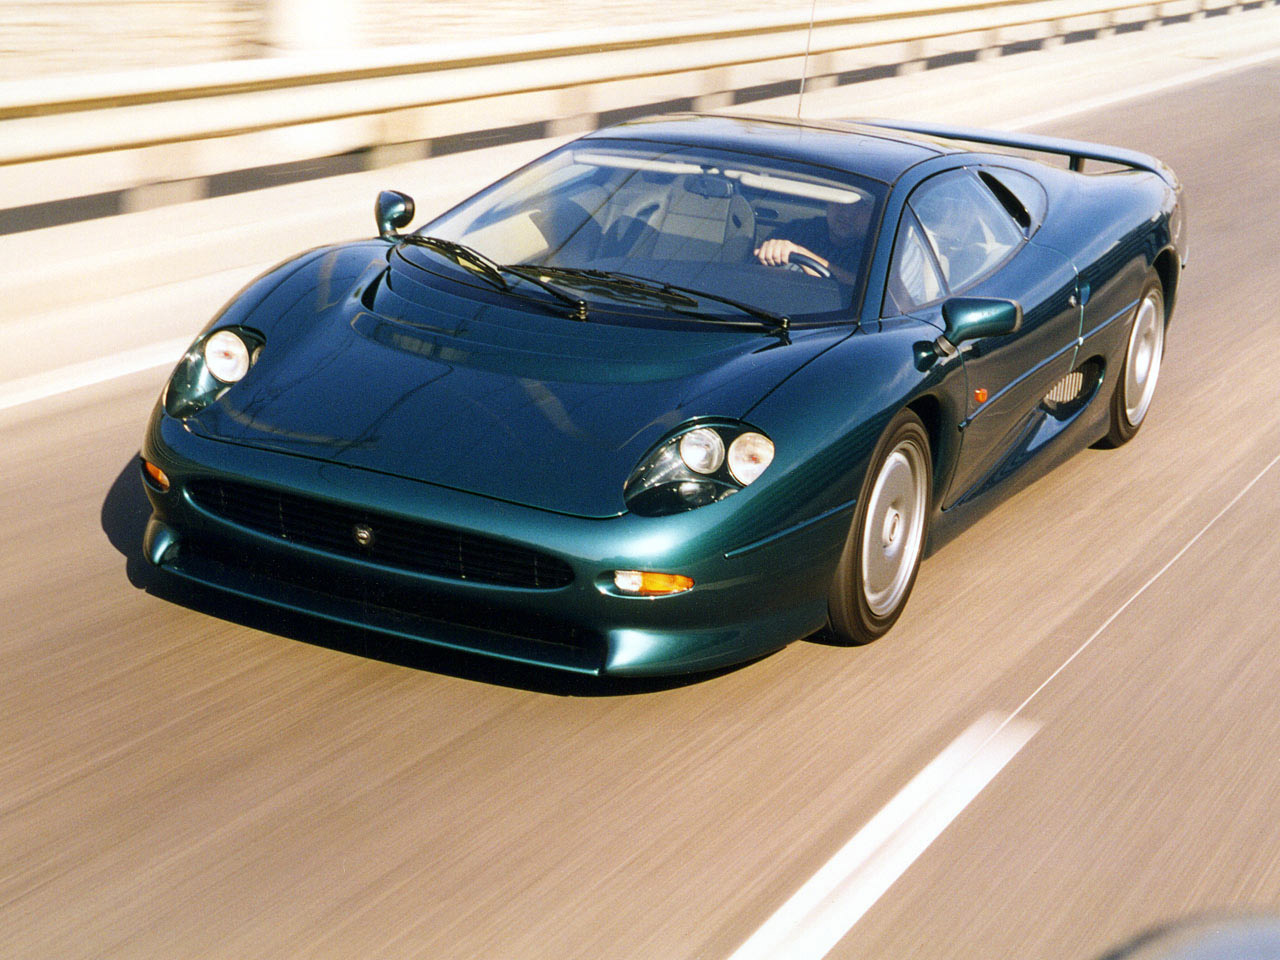 Jaguar 2018 Xj >> 1993 Jaguar XJ220 Image. Photo 82 of 82